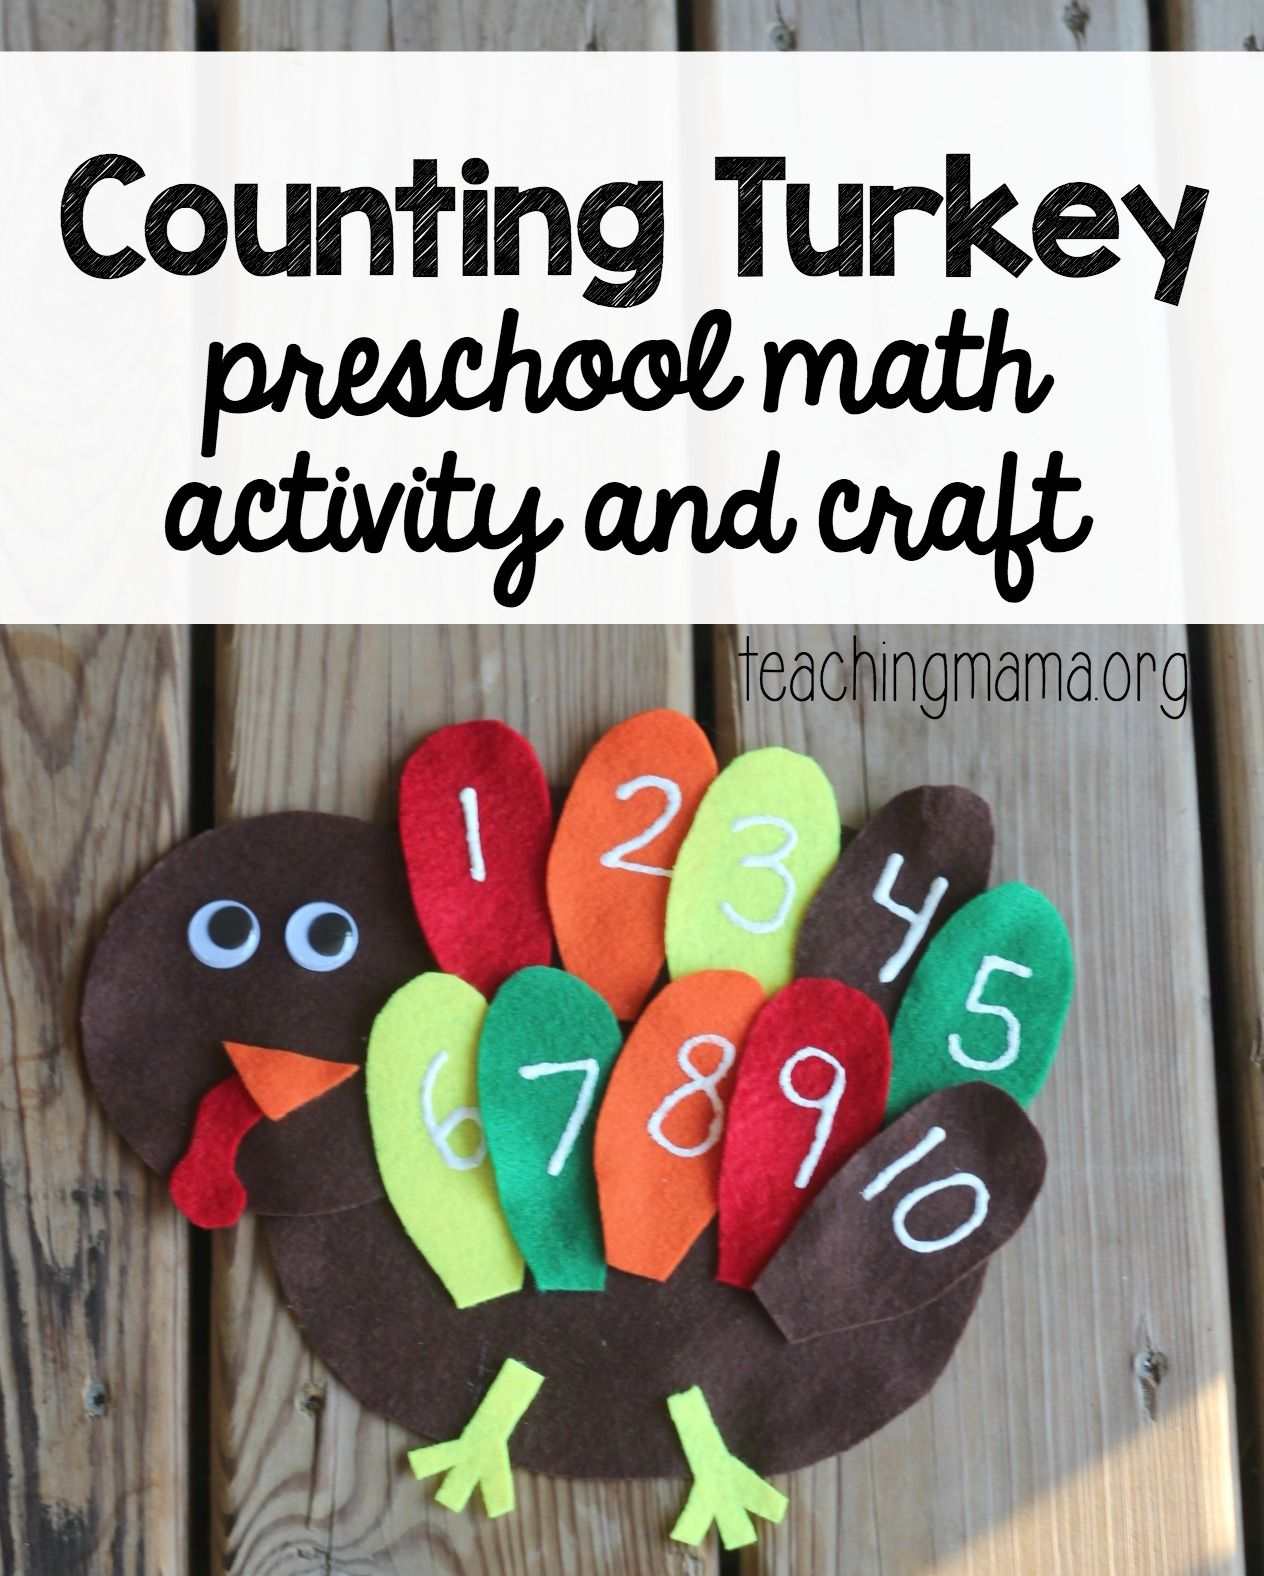 Counting Turkey Activity For Preschoolers